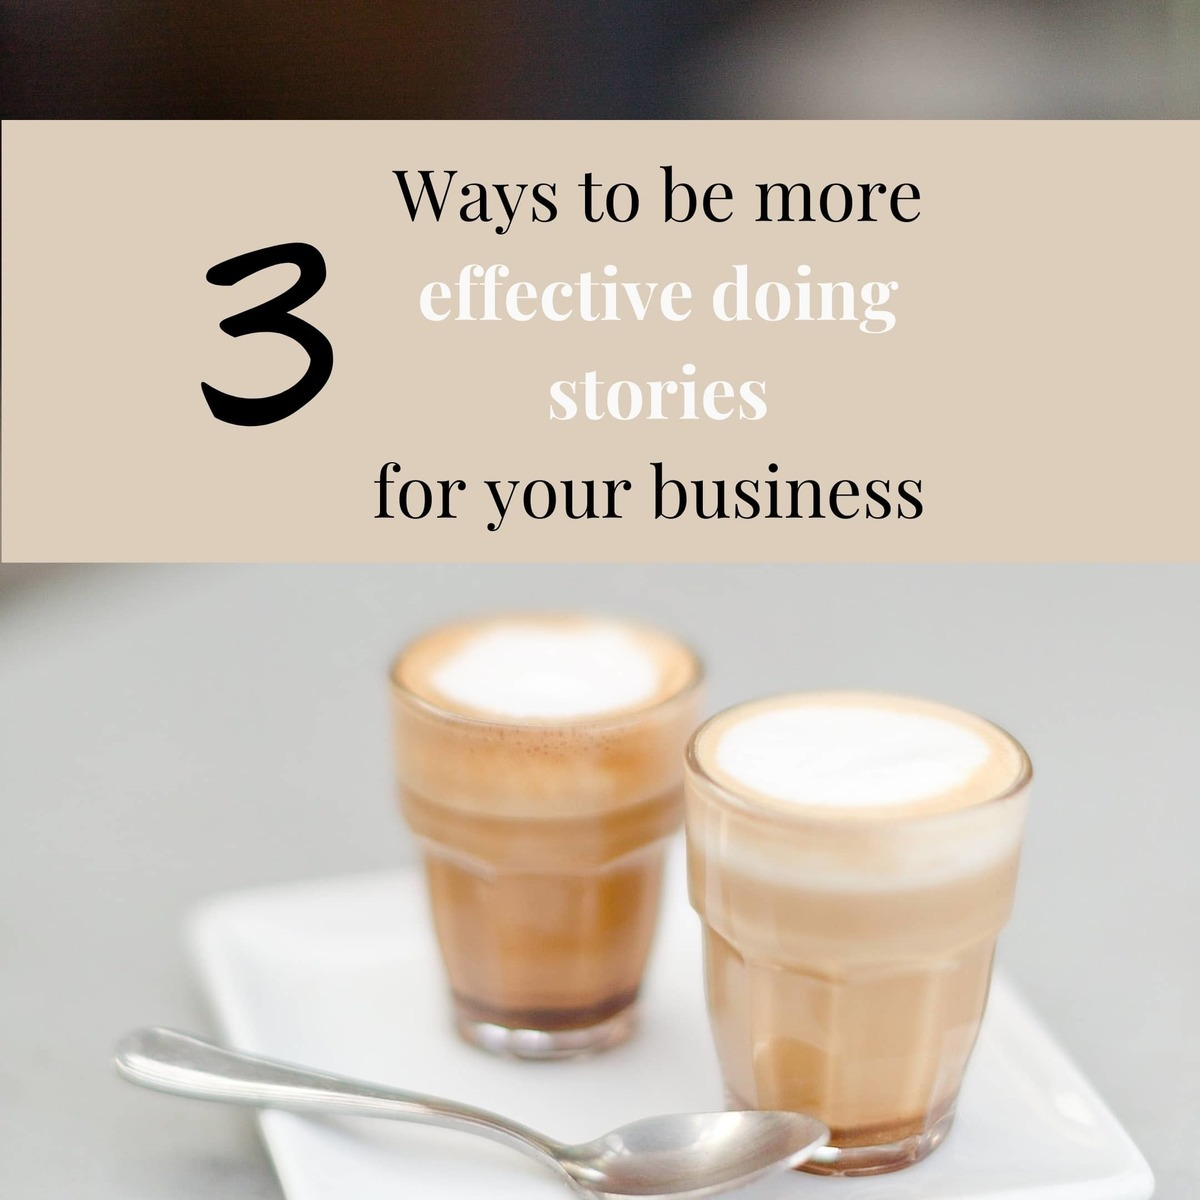 3 ways to be more effective doing stories for your business by Joanna Pantigoso Branding Photographer in Amsterdam